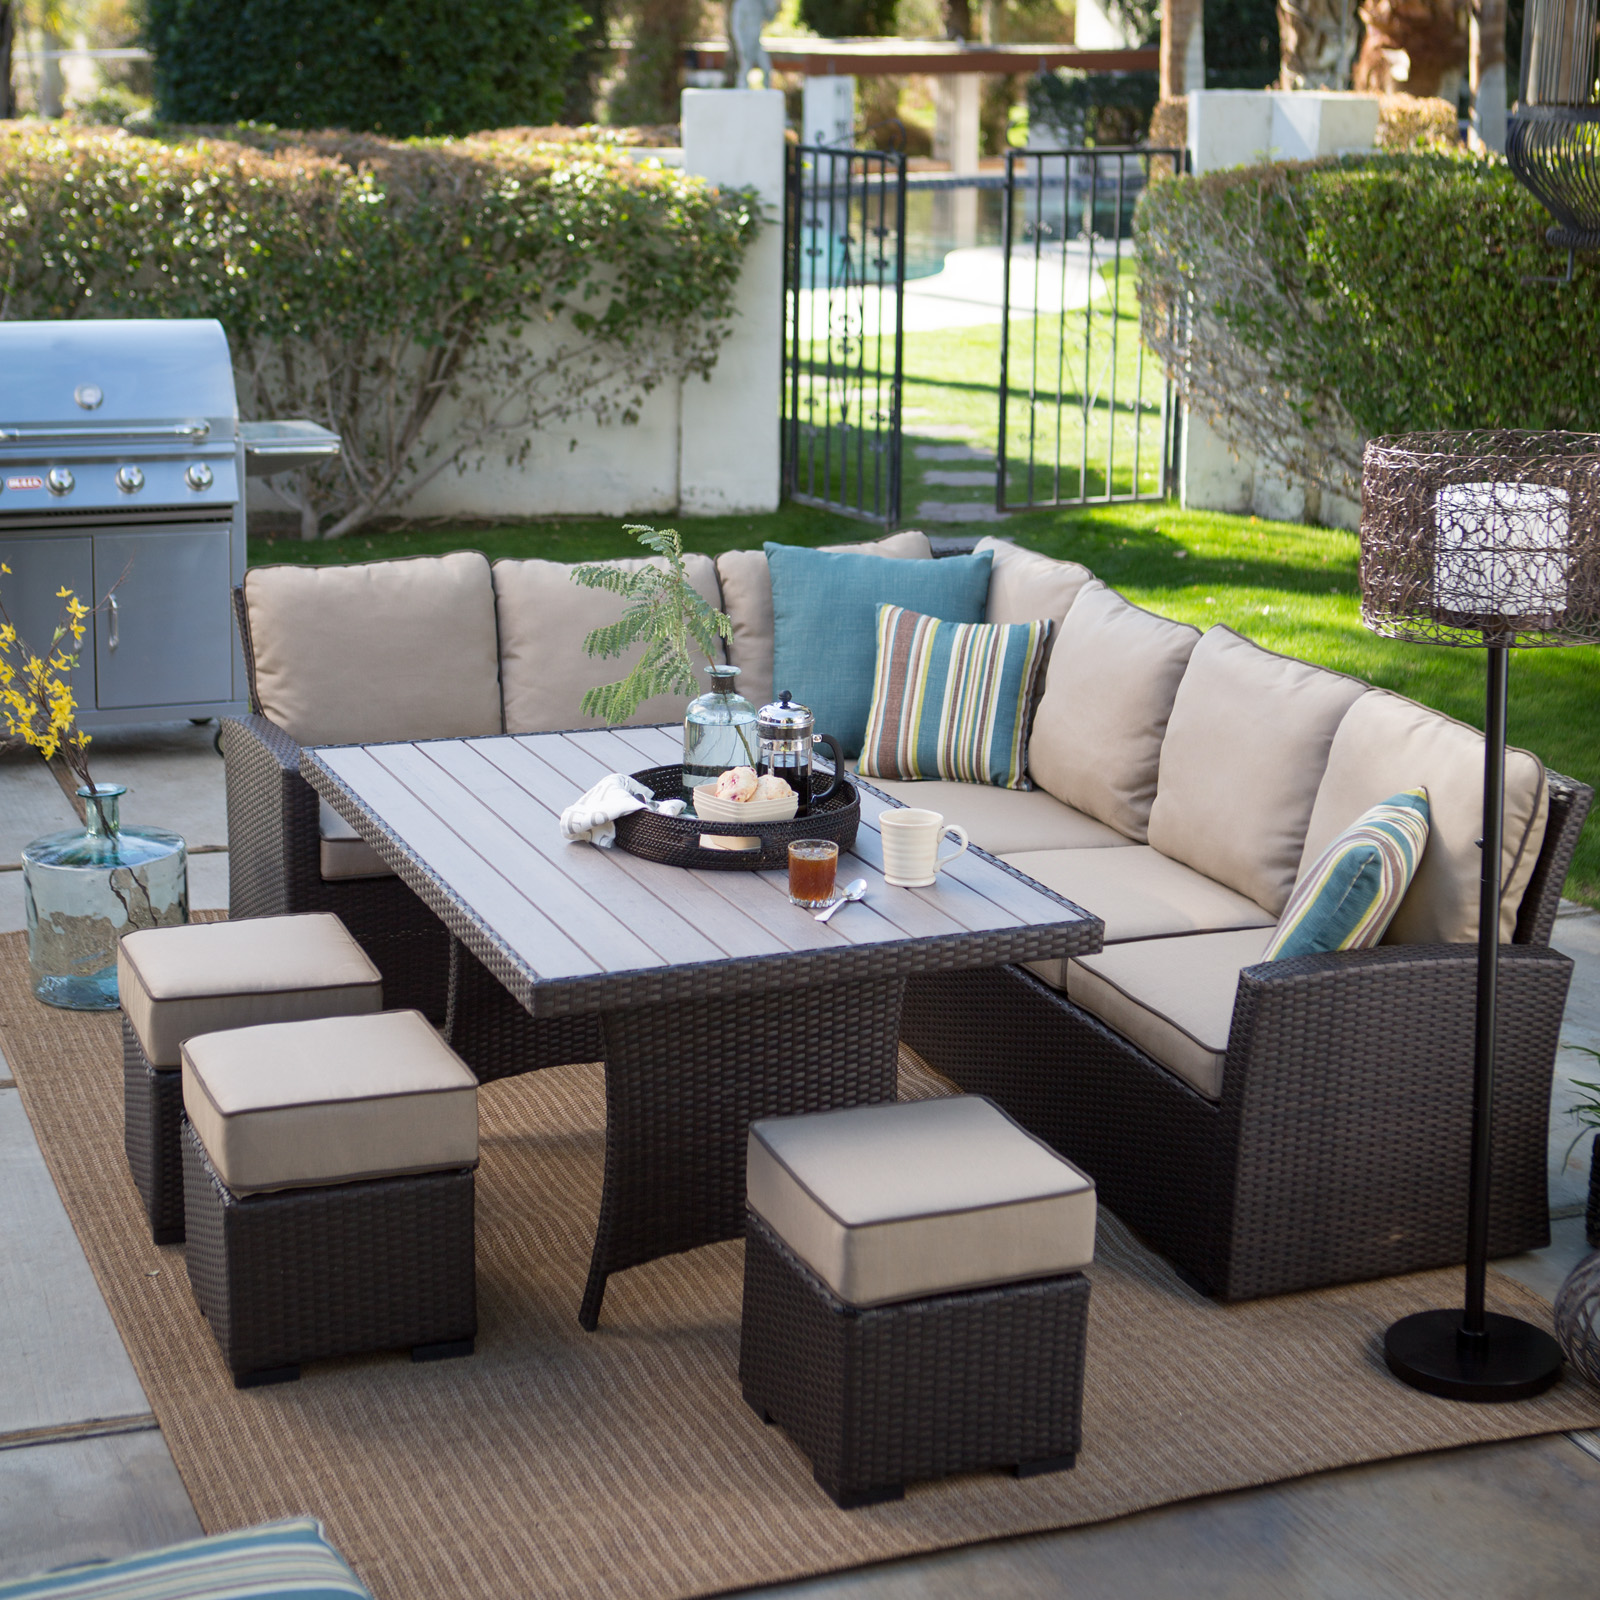 Superior QUICK VIEW. Belham Living Monticello All Weather Wicker Sofa Sectional  Patio Dining Set